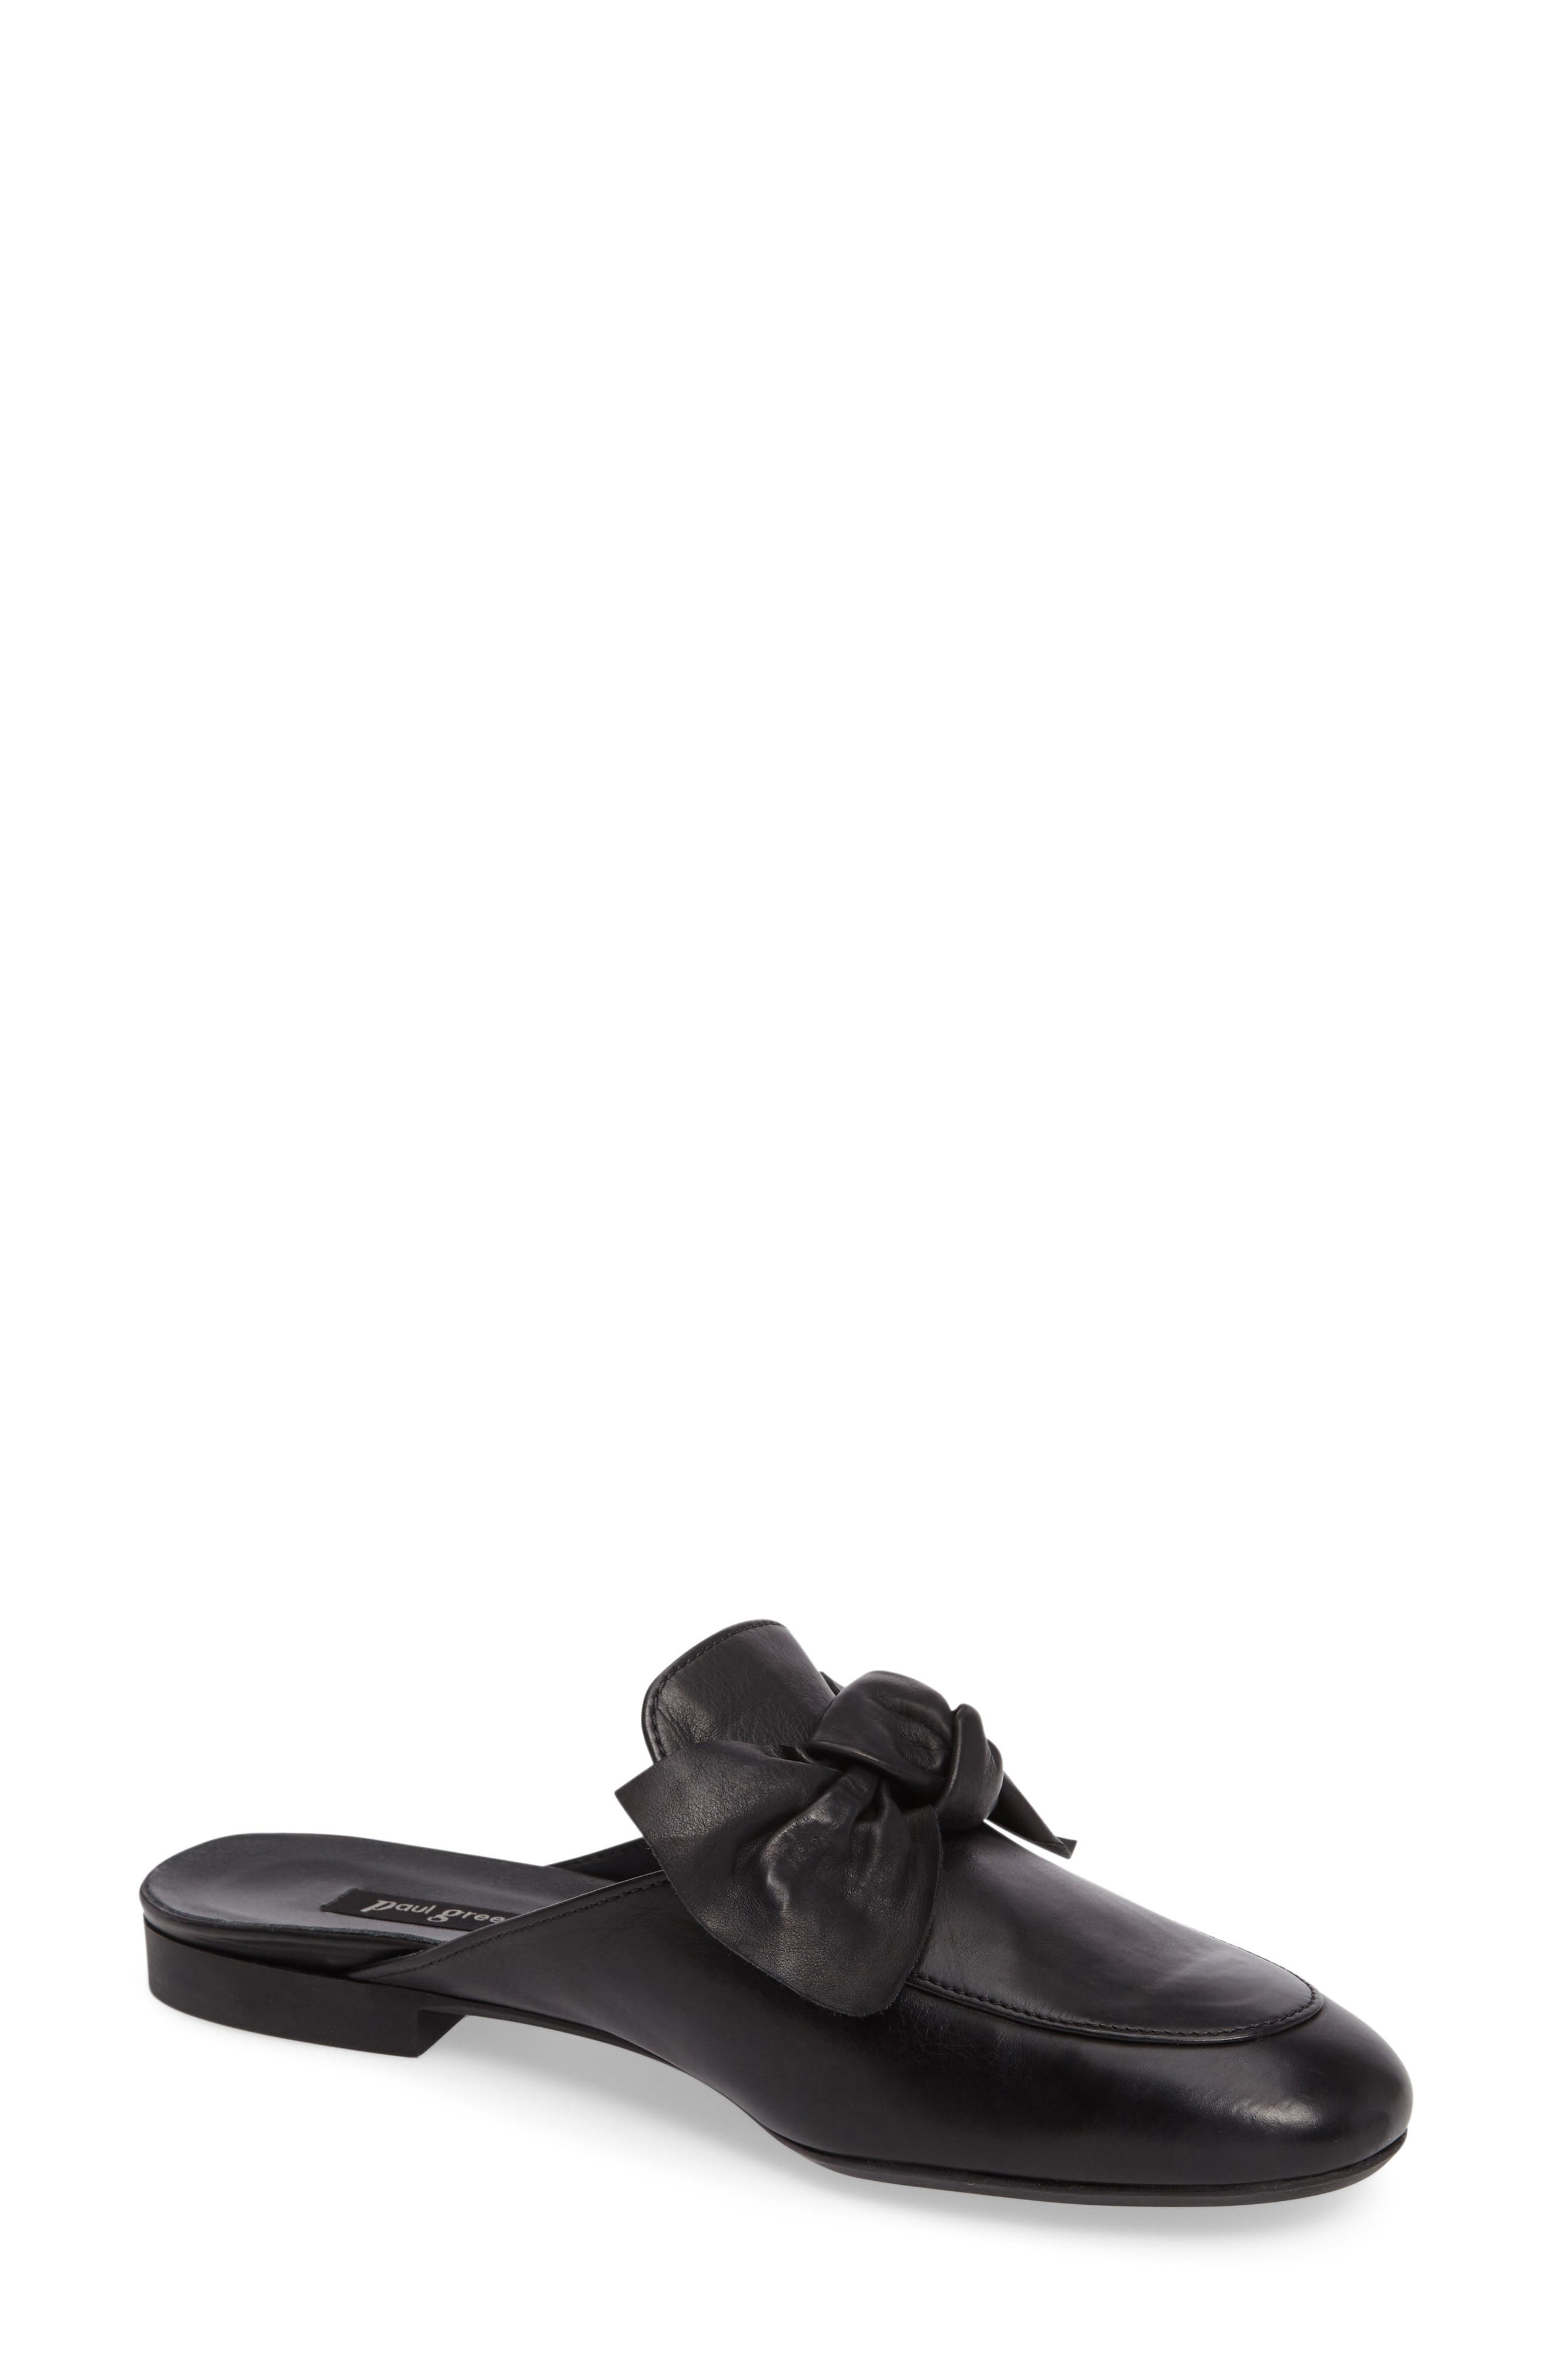 Mary Bow Mule Loafer,                         Main,                         color, 001